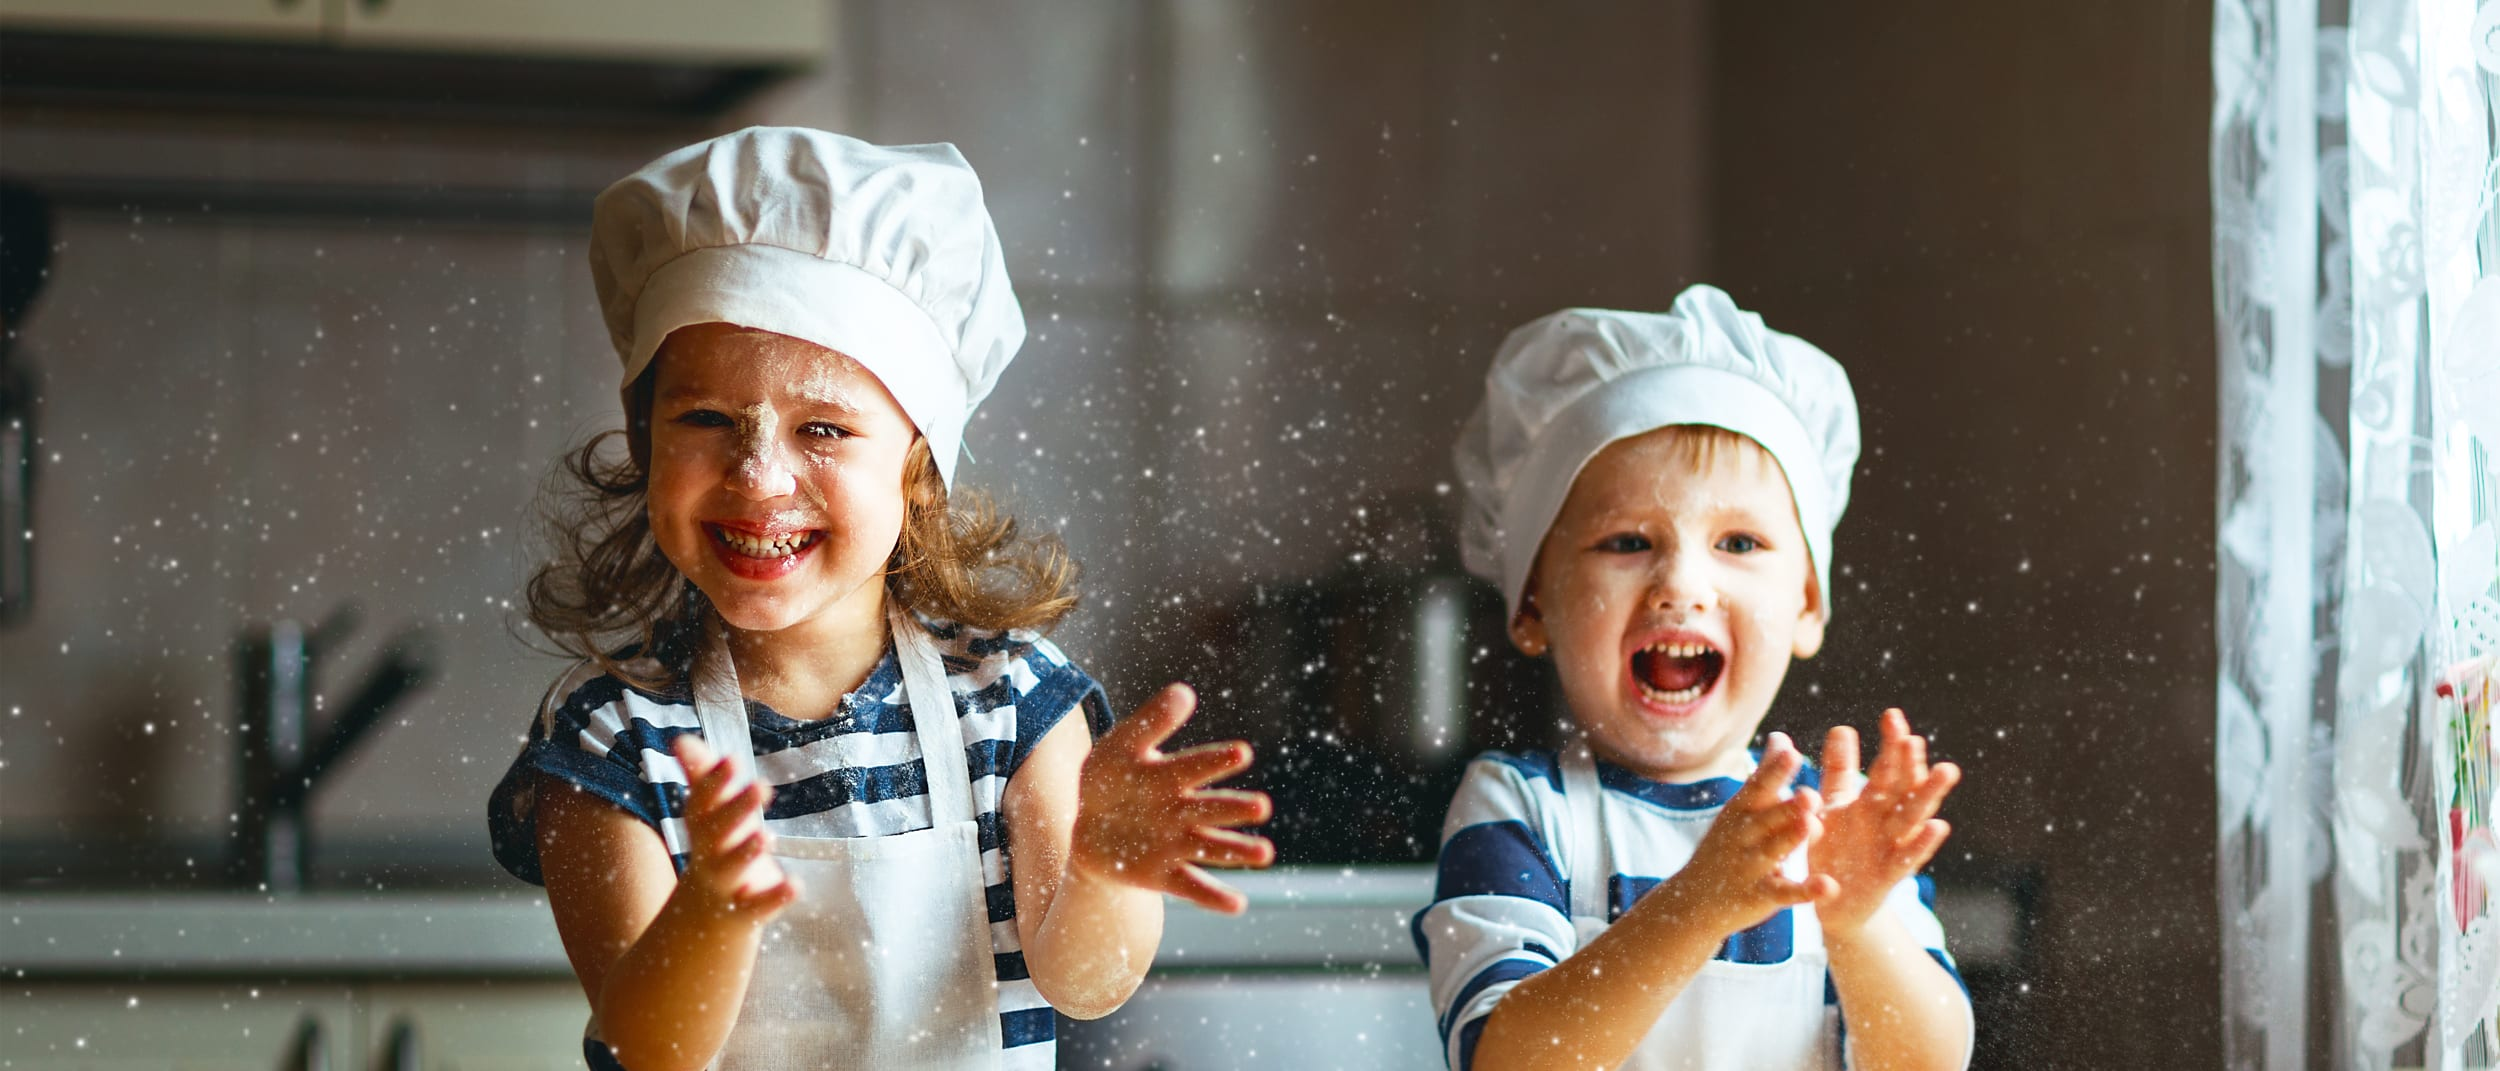 Kids masterchef workshop